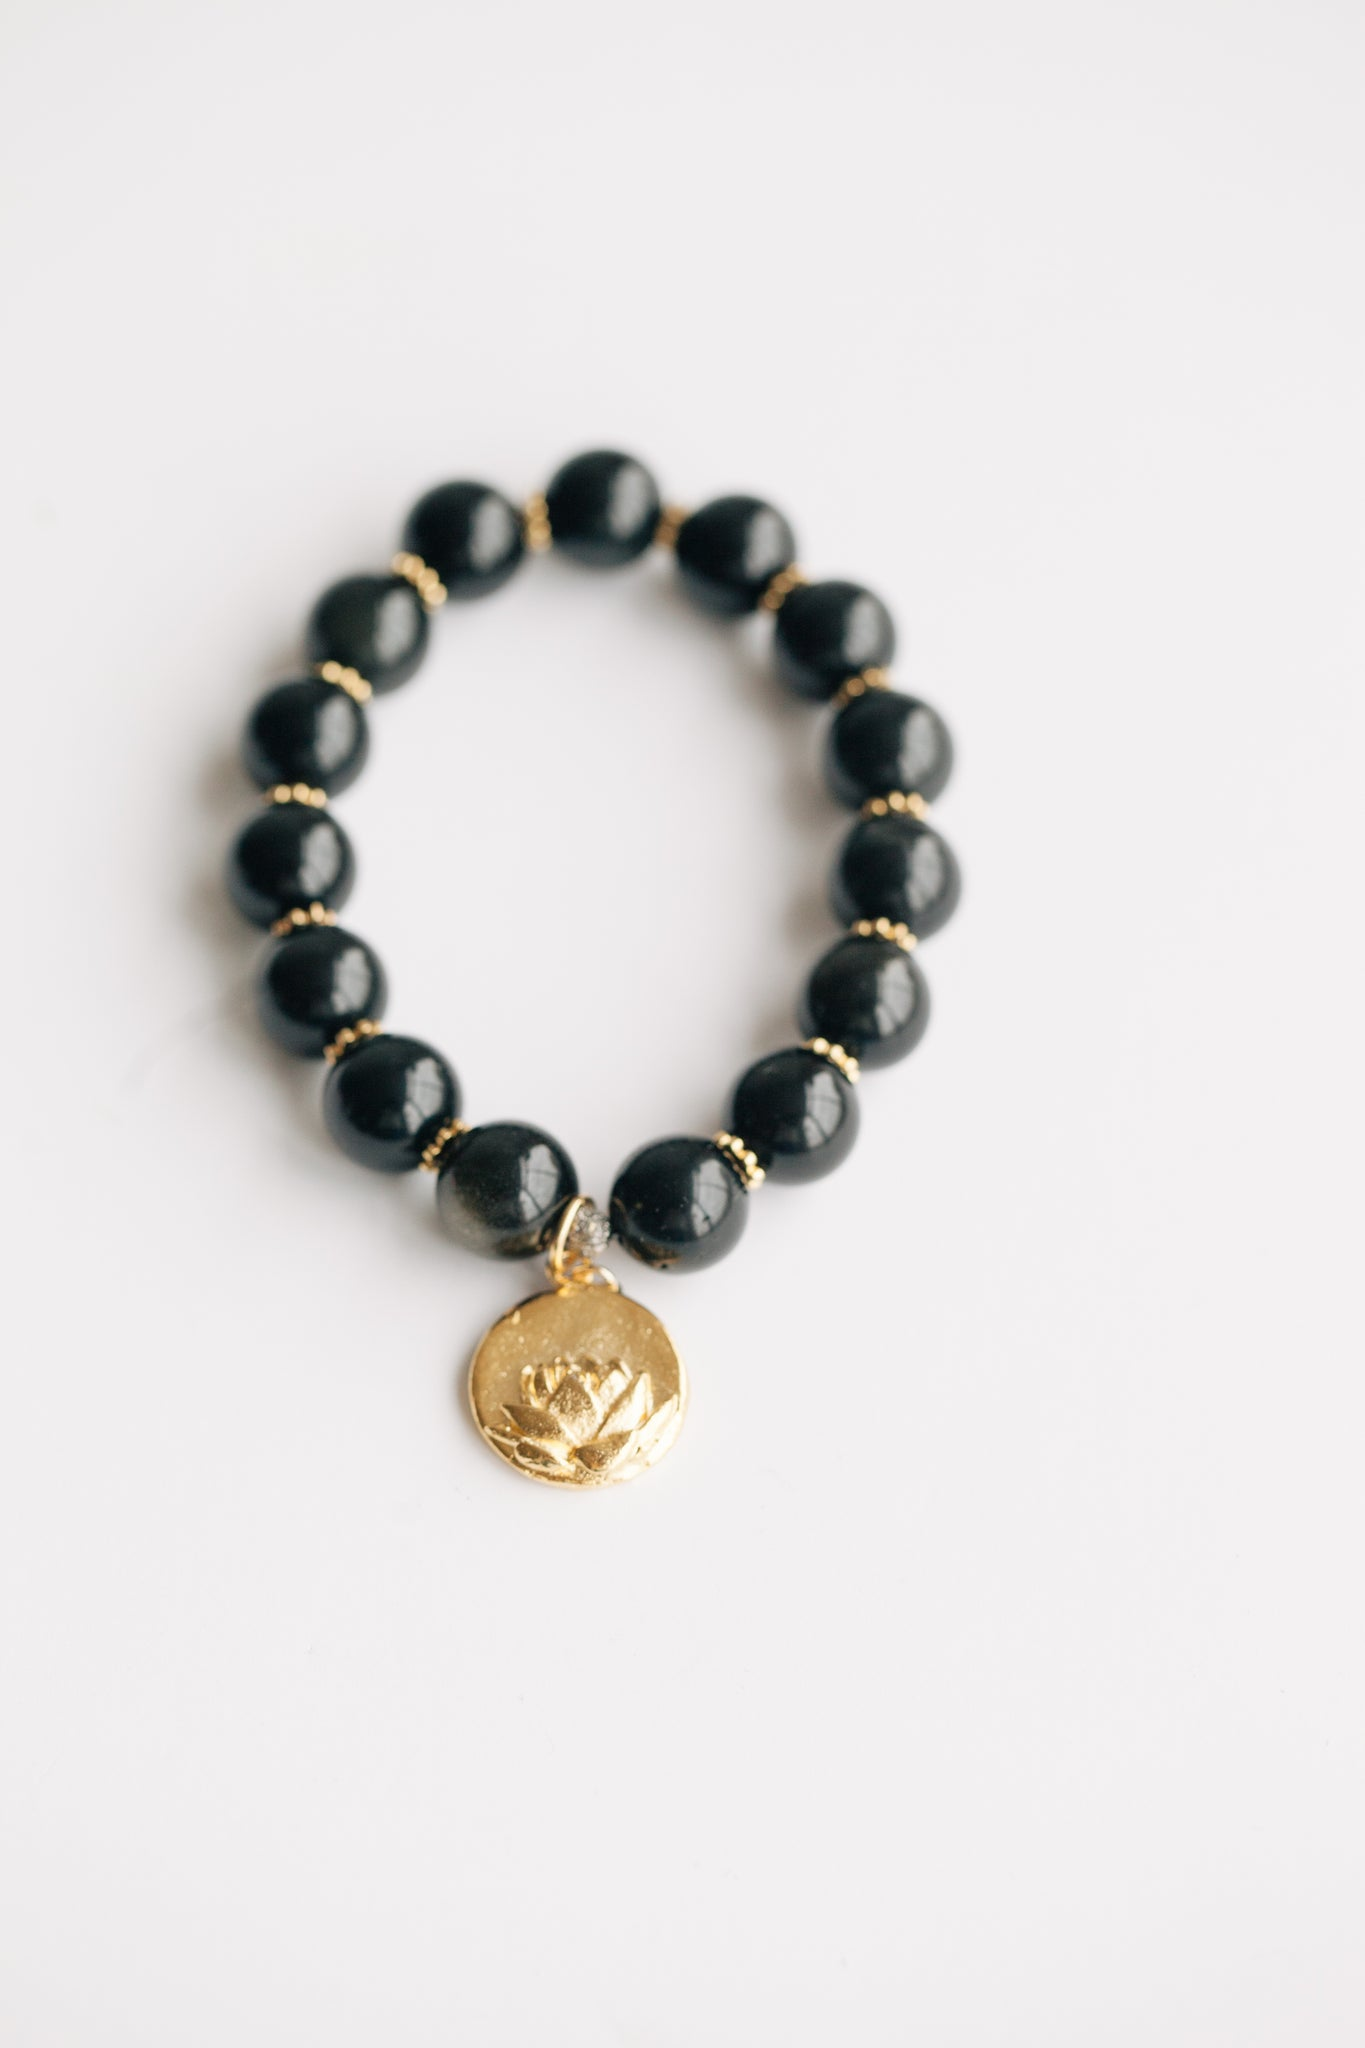 12mm Black Obsidian w/ Lotus Charm